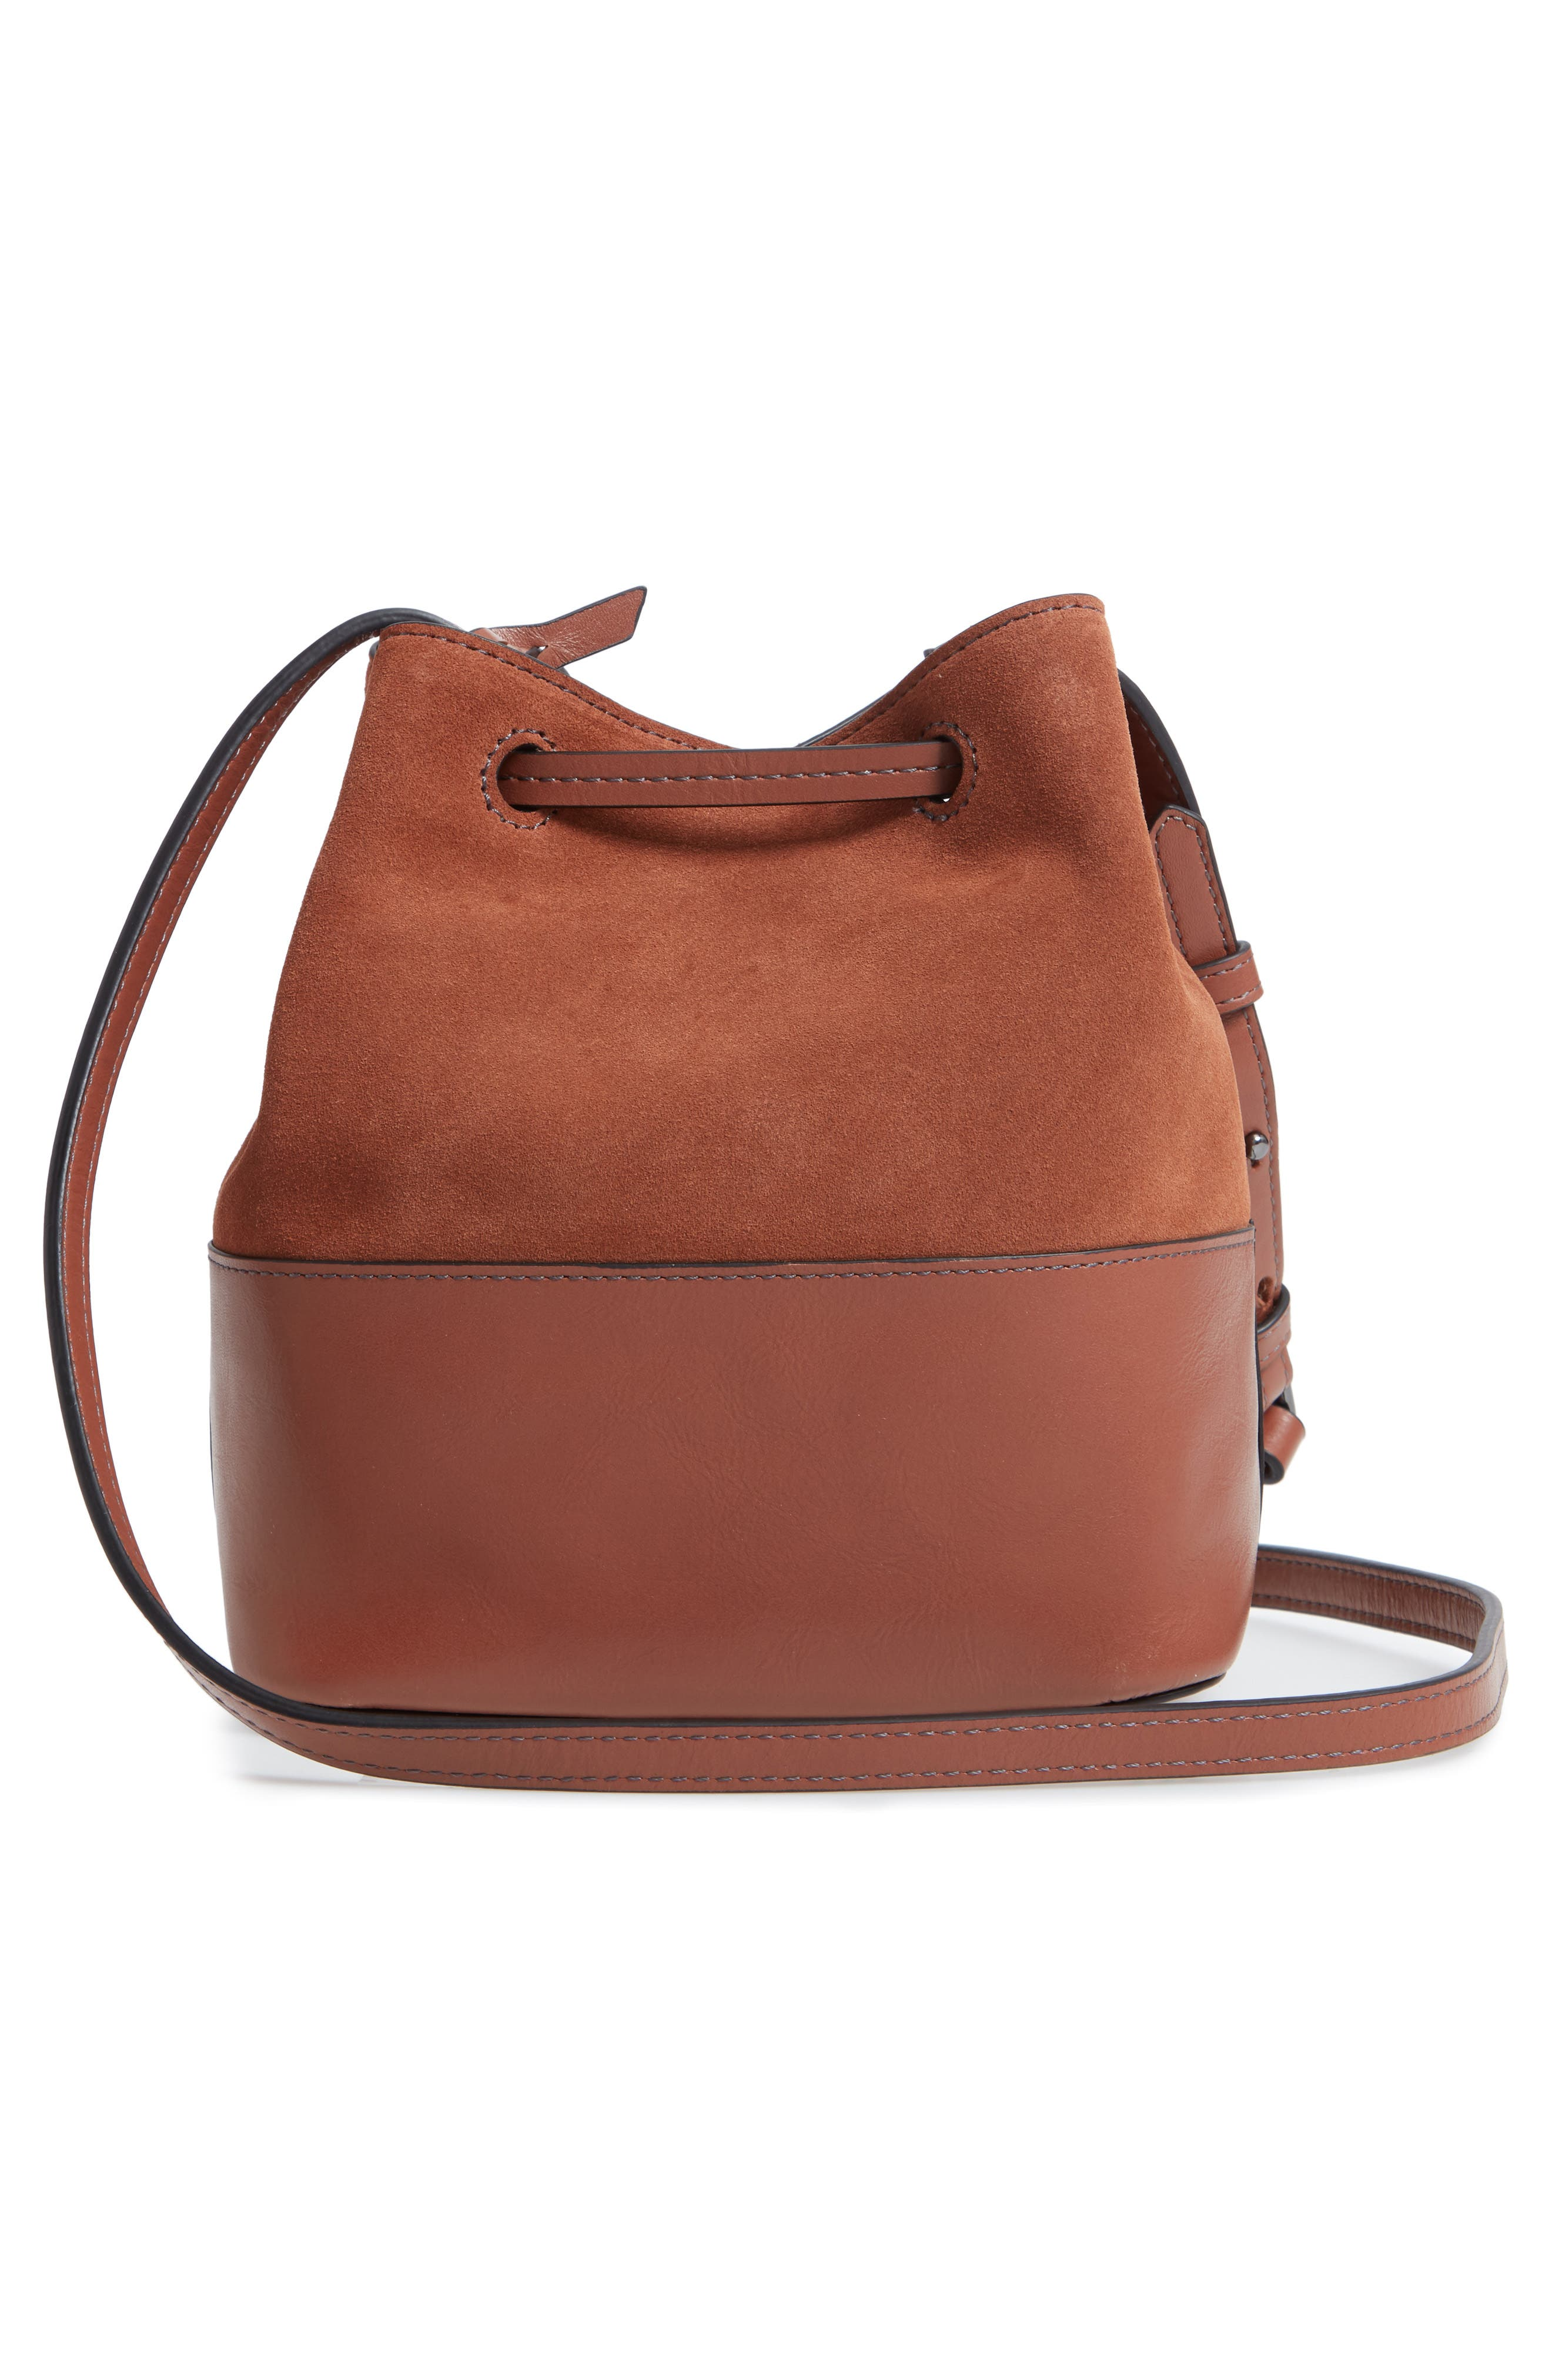 Small Blake RFID Leather Bucket Bag,                             Alternate thumbnail 3, color,                             202